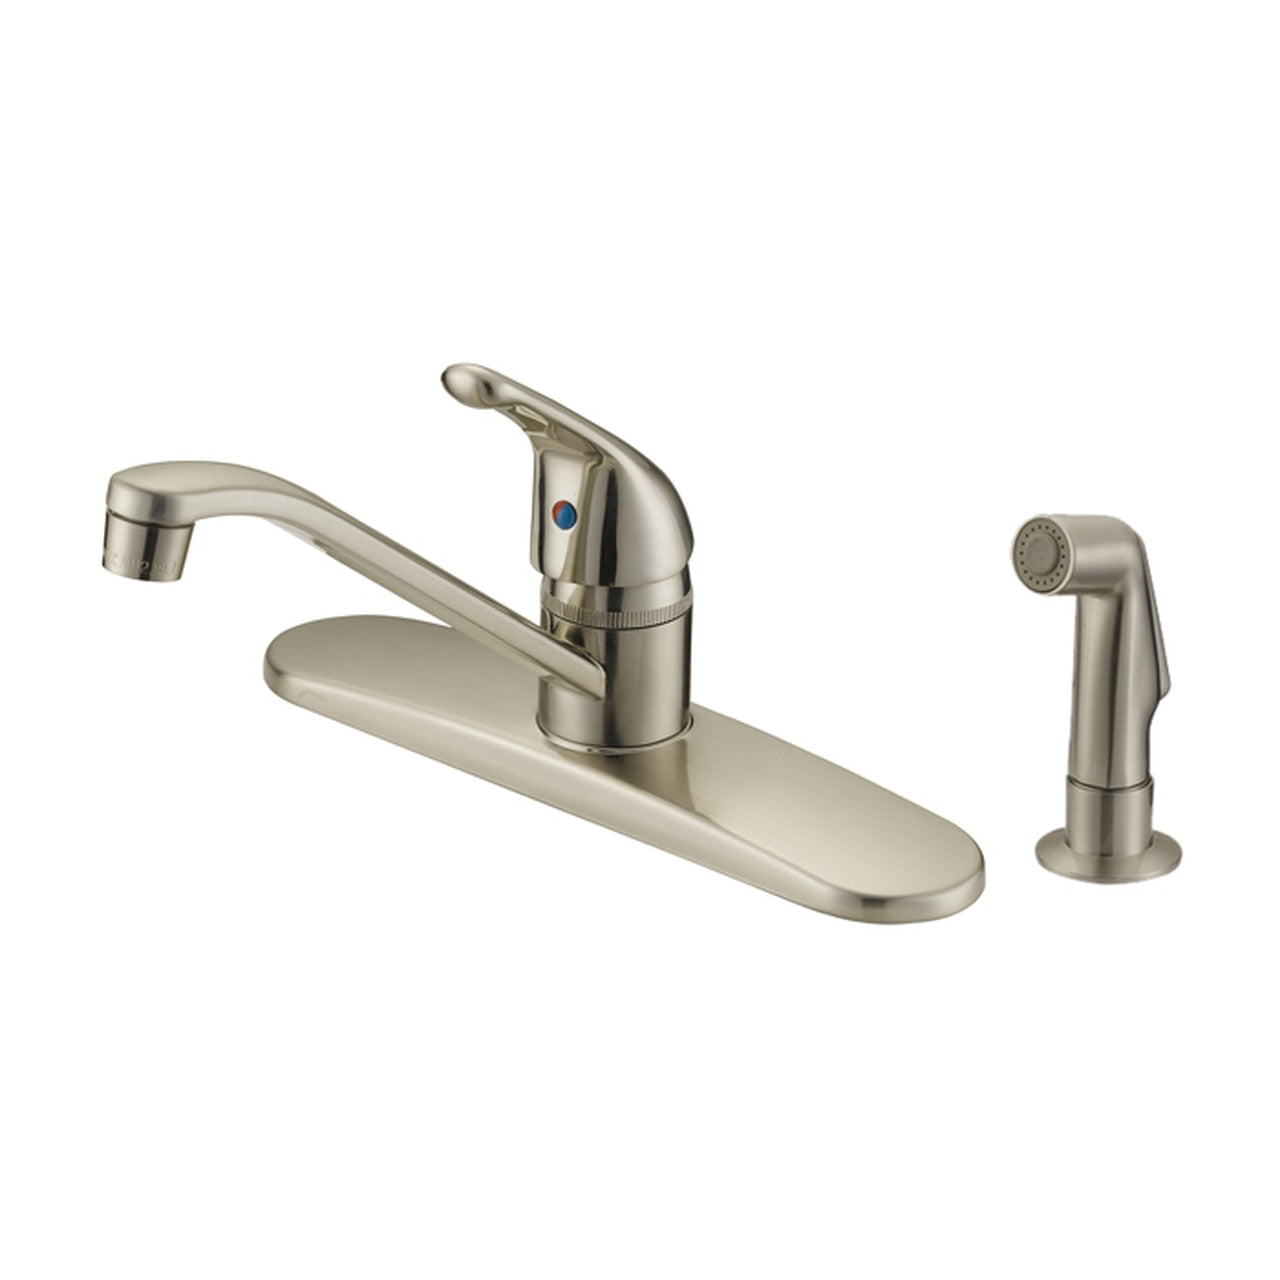 Designers Impressions 611618 Satin Nickel Kitchen Faucet w/ Sprayer